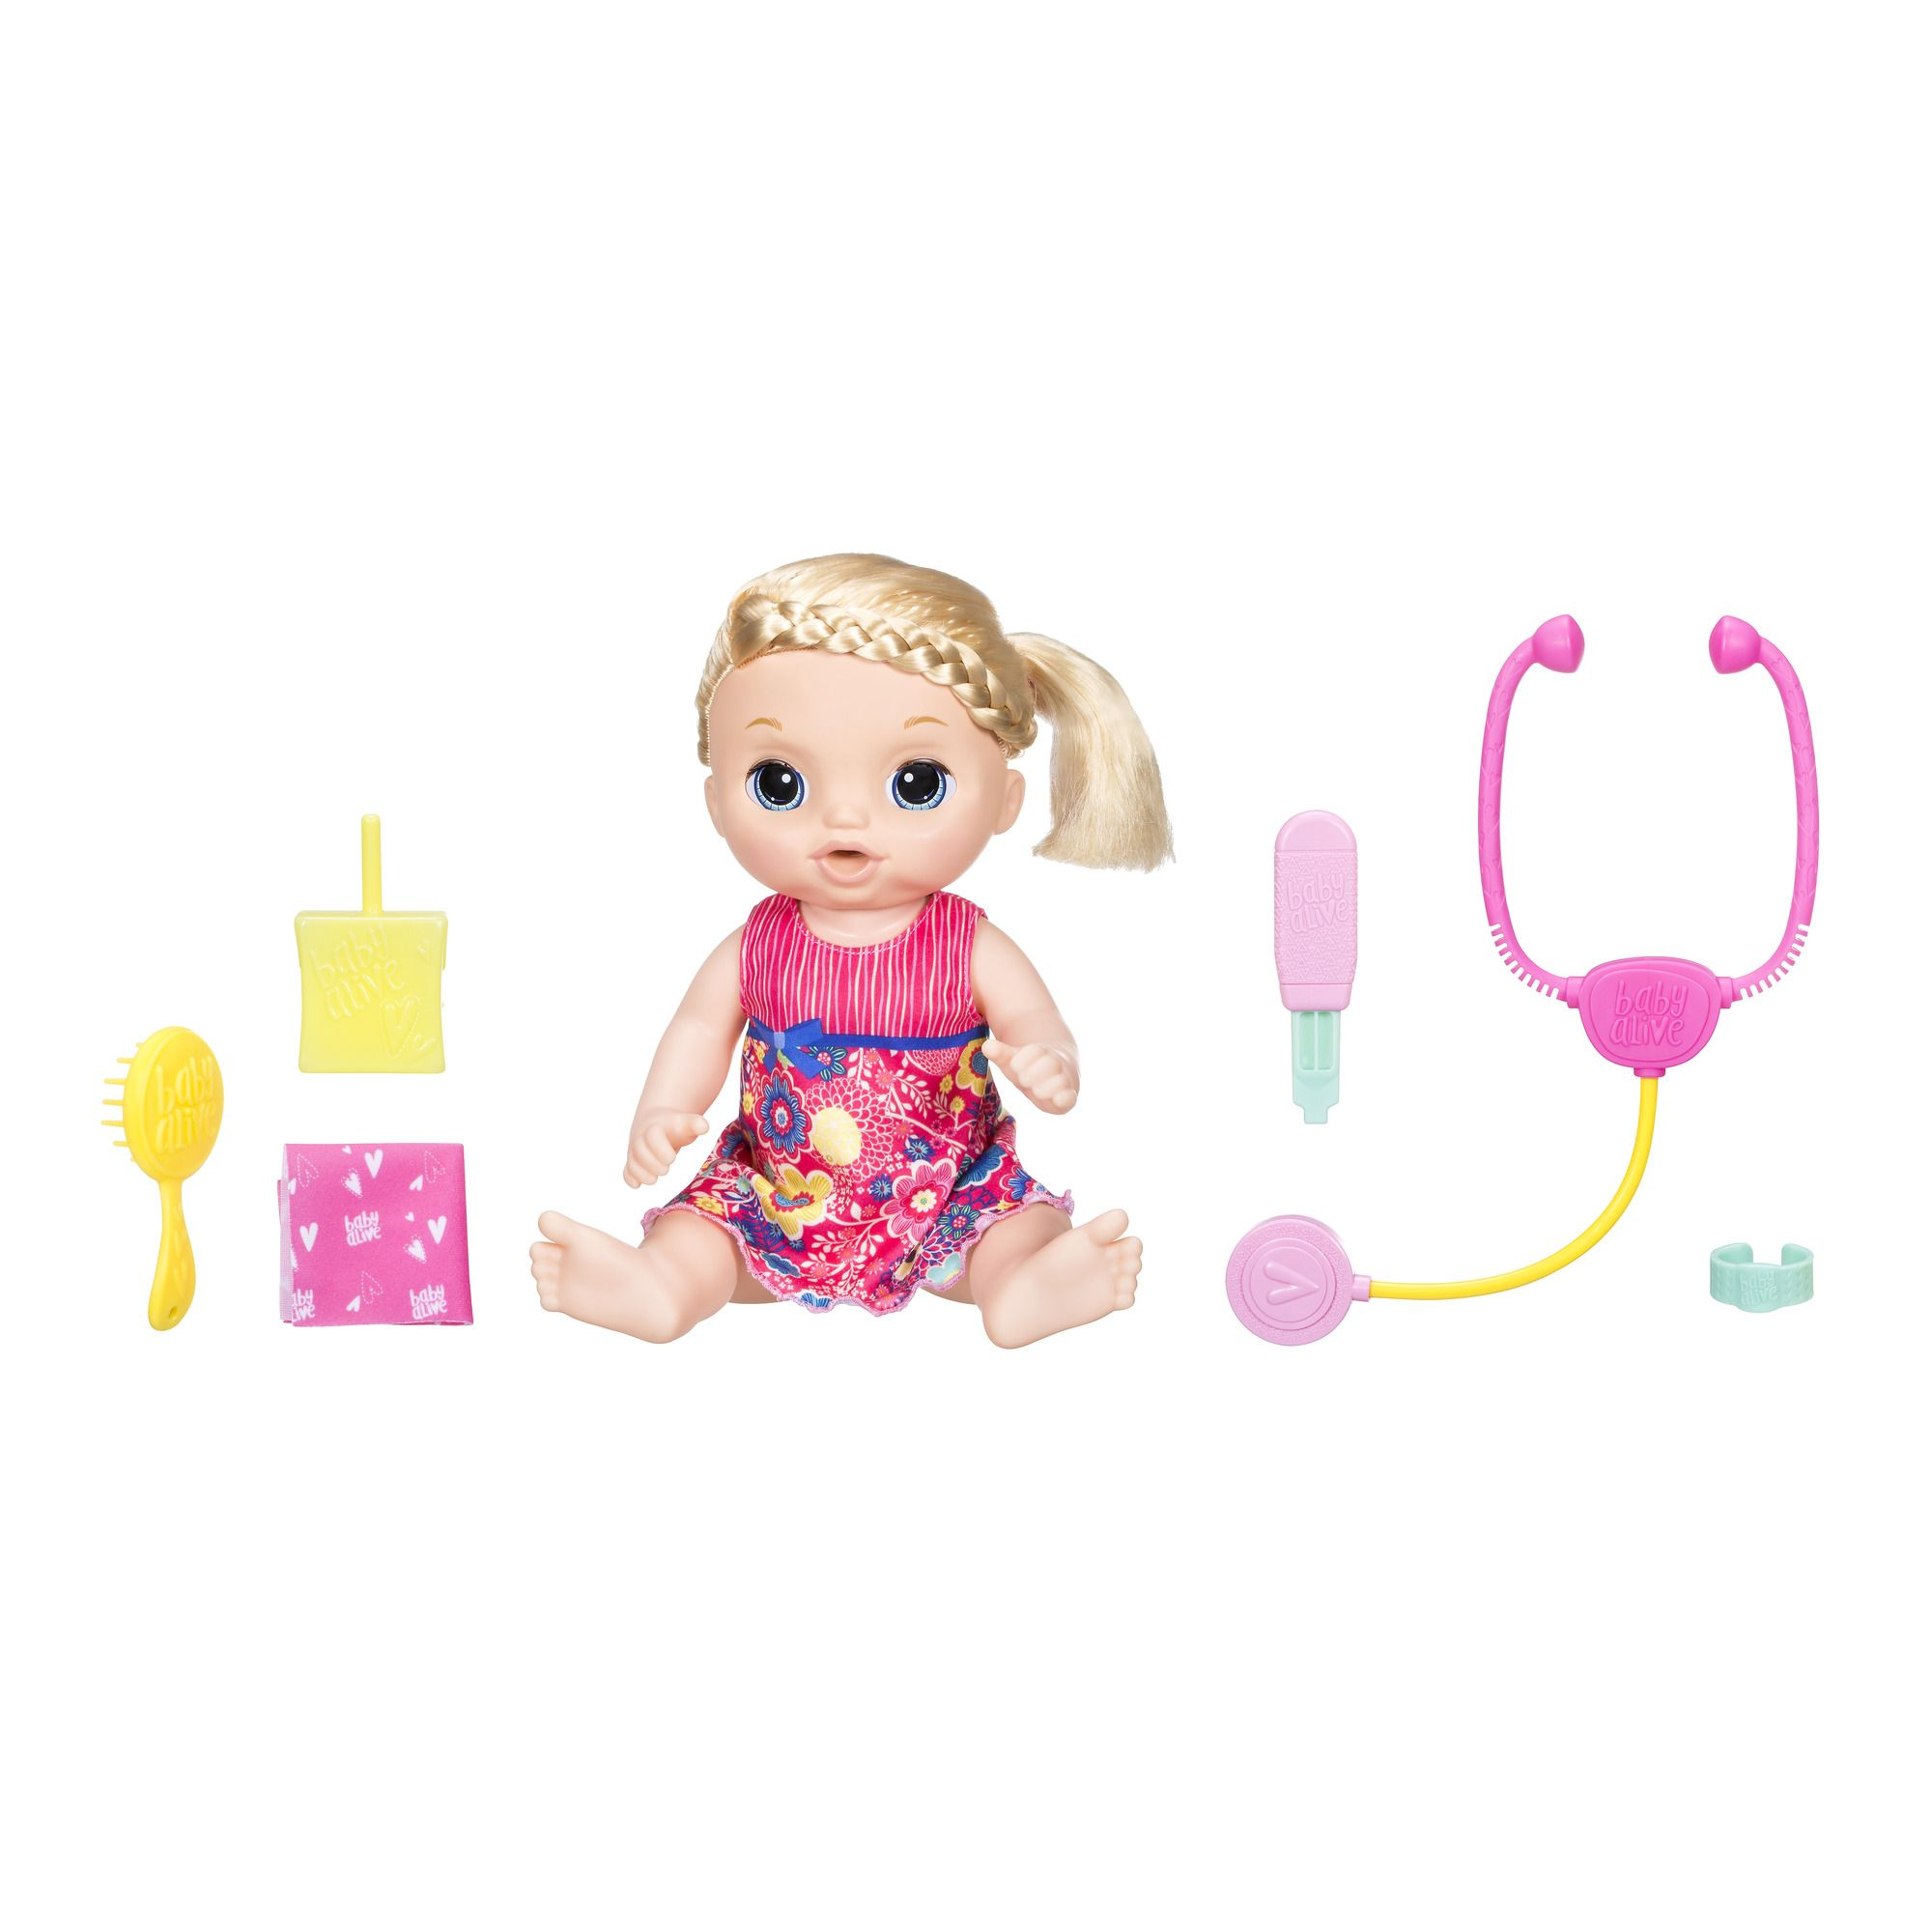 Free 2 Day Shipping On Qualified Orders Over 35 Buy Baby Alive Sweet Tears Blonde Hair Baby Doll 35 Phrases An In 2020 Baby Alive Baby Alive Dolls Toddler Boy Toys